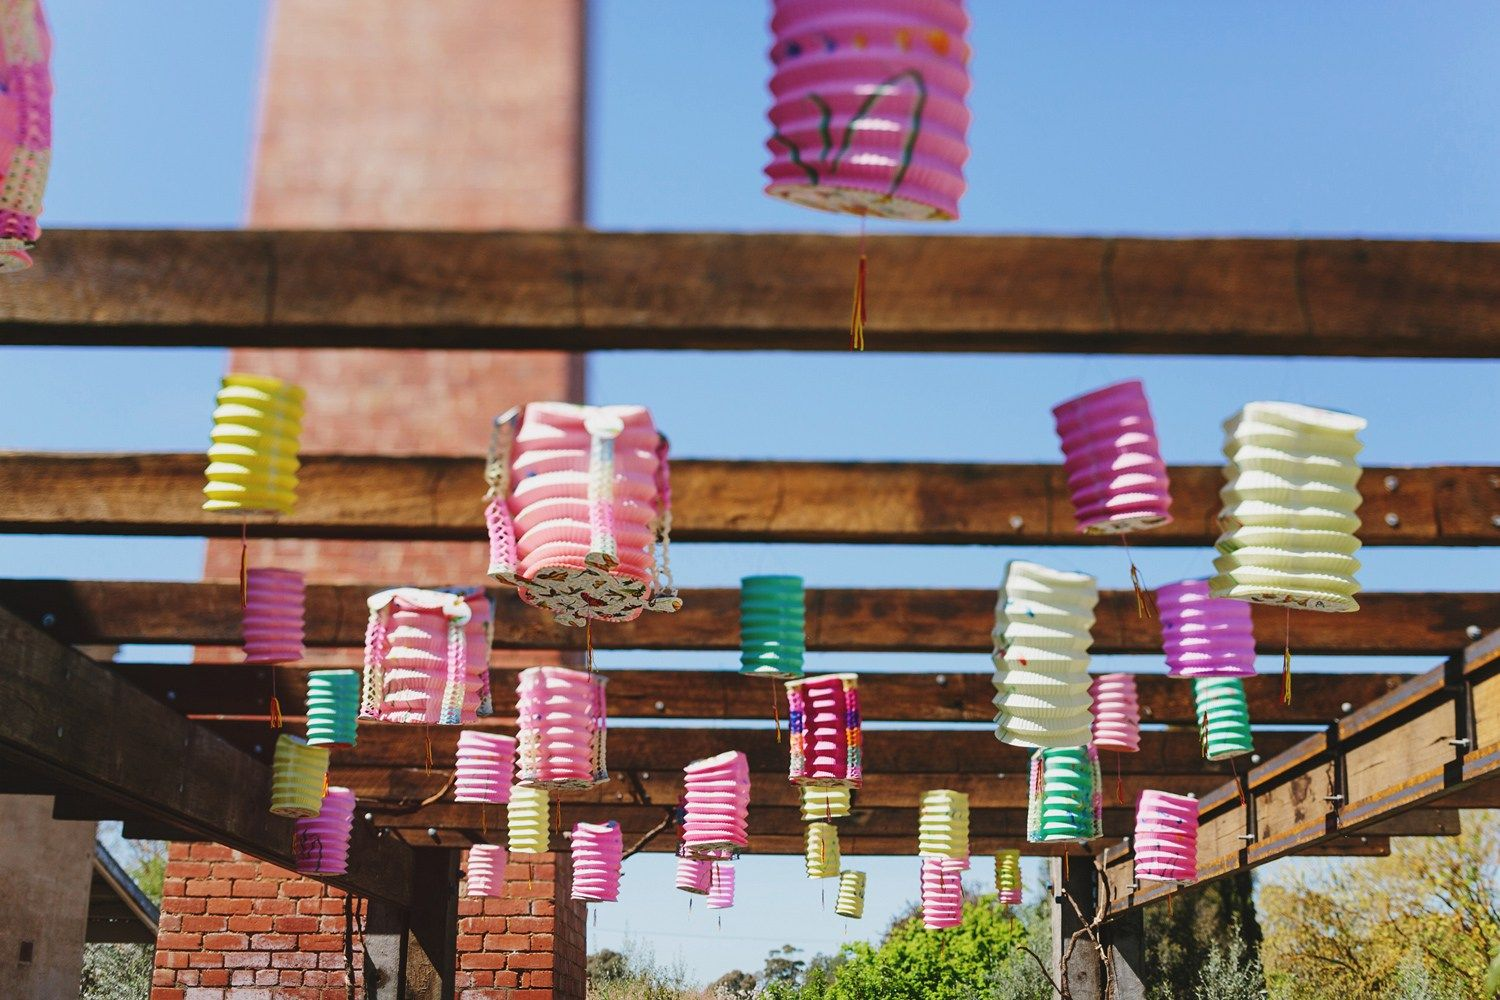 Colourful lantern at wedding ceremony | fabmood.com #weddingceremony #rusticwedding #factorywedding